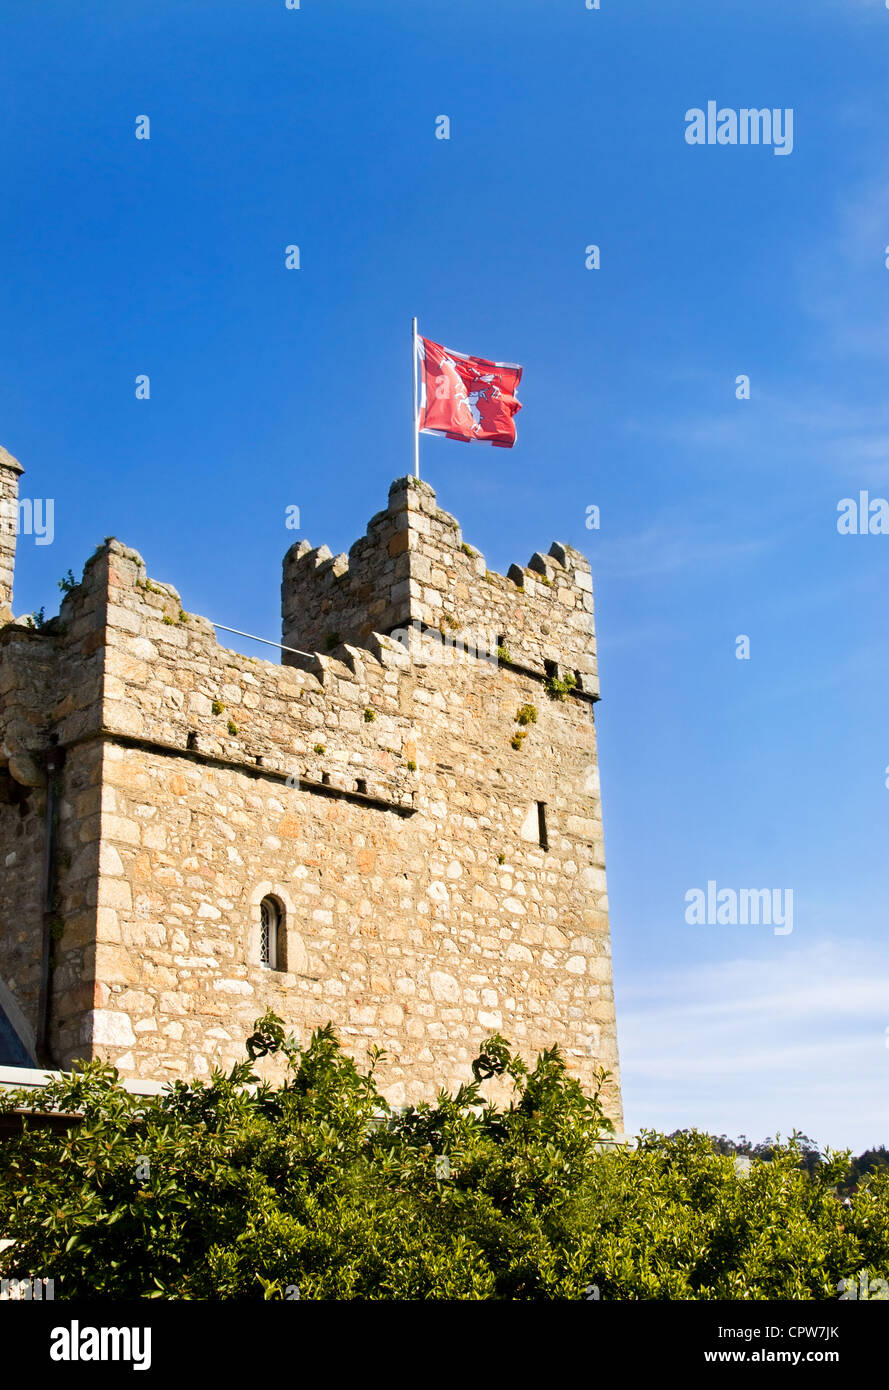 Watch tower at medieval castle in Dalkey, Ireland. - Stock Image